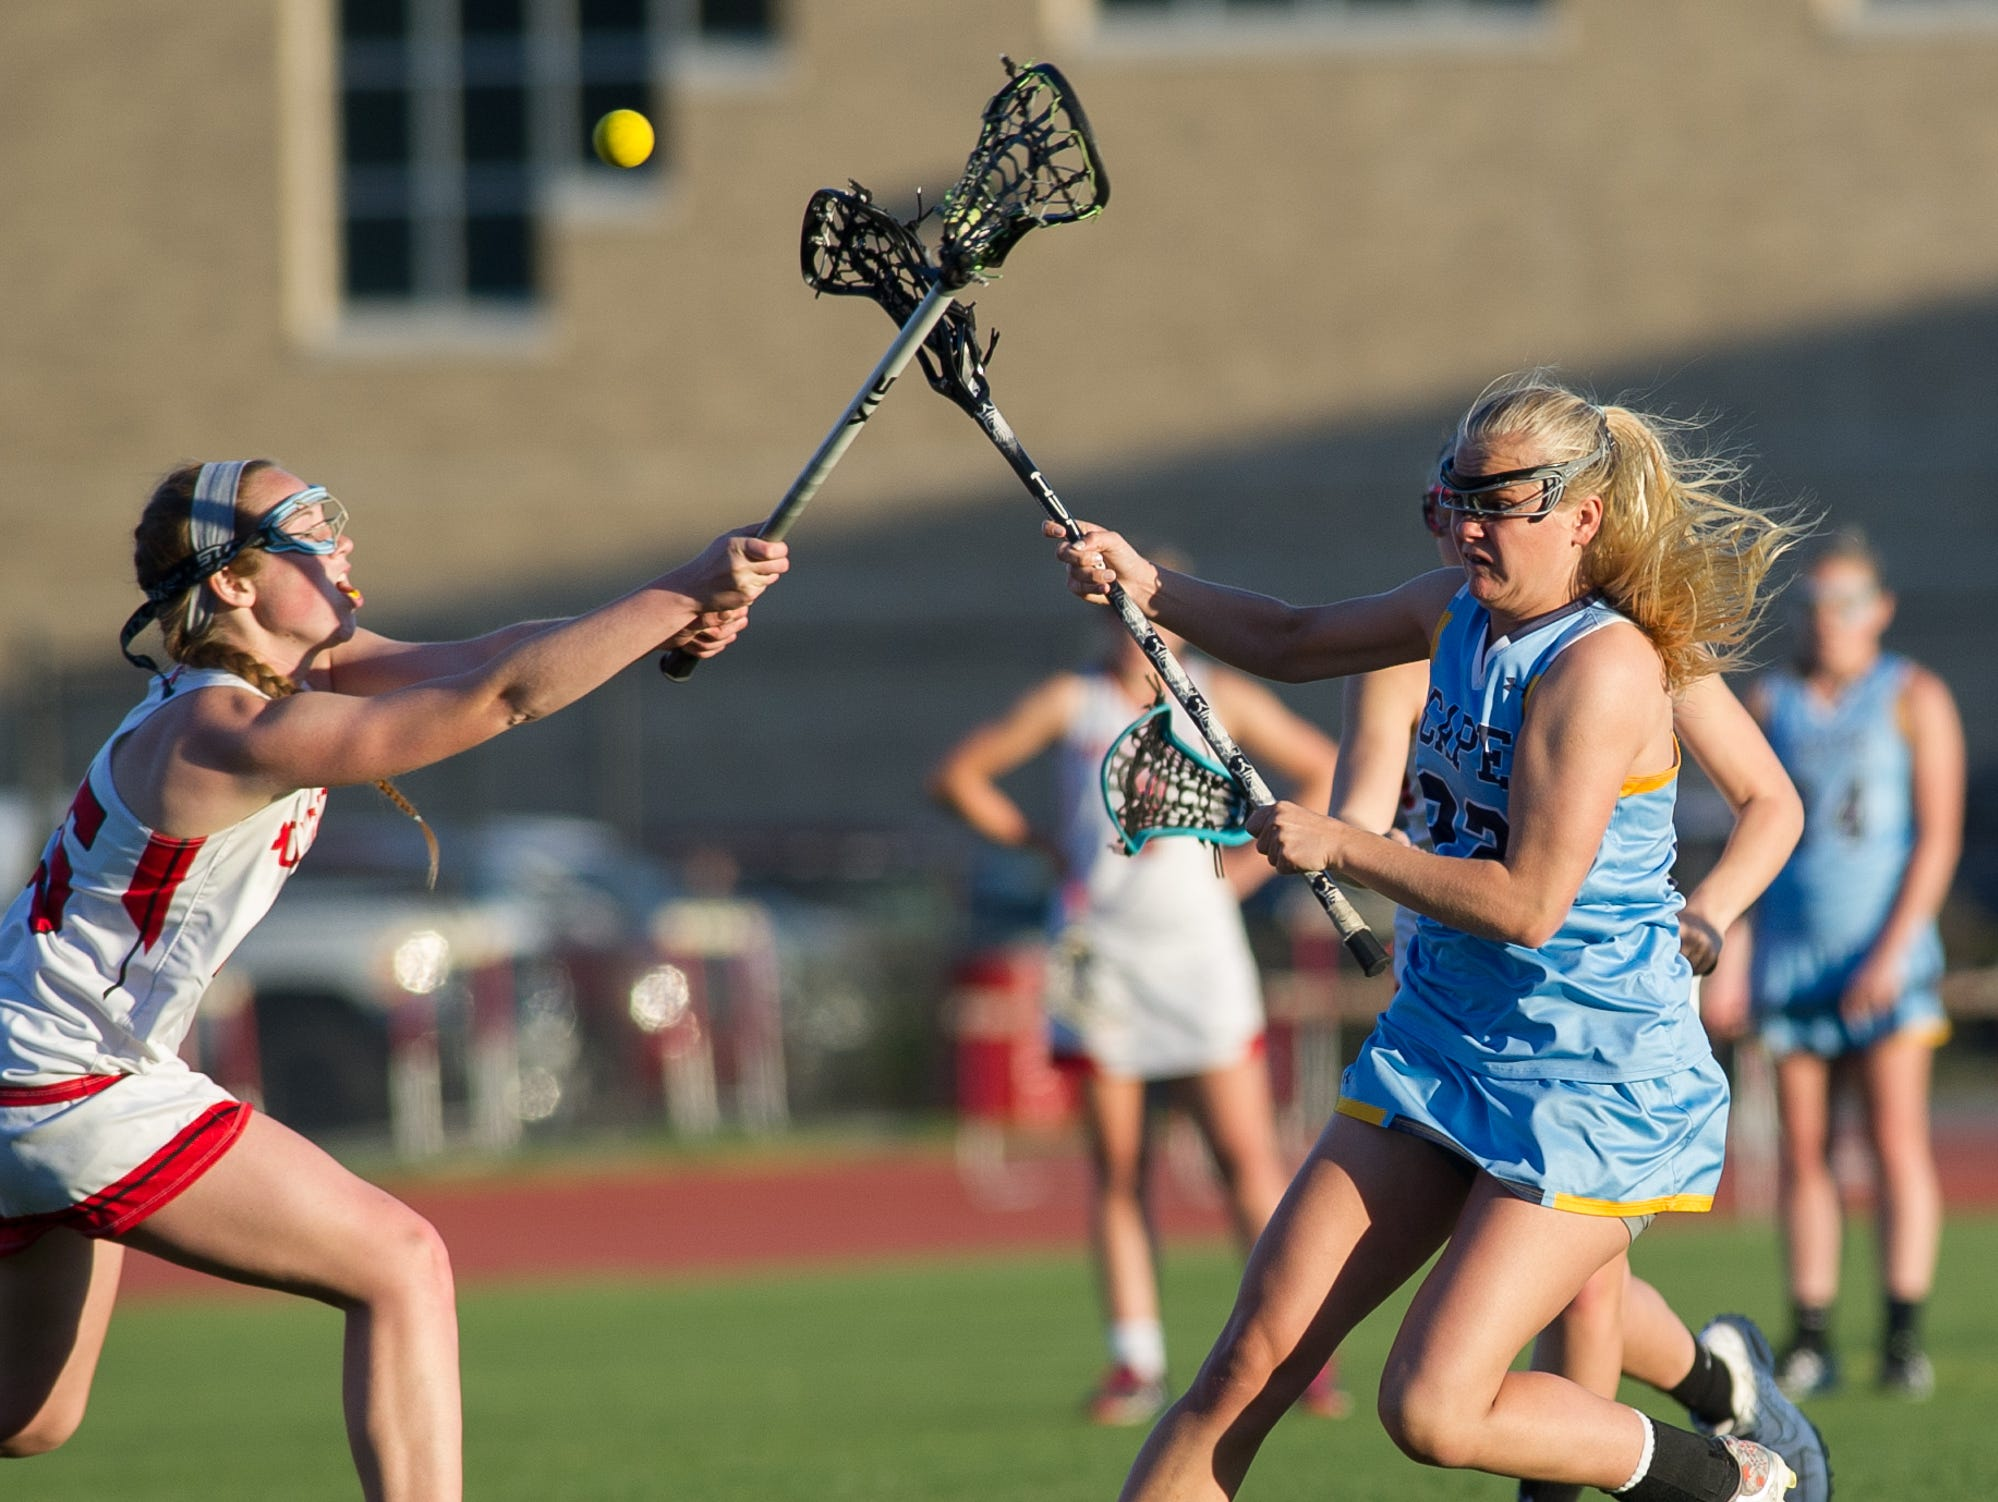 Cape Henlopen's Evelyn Shoop (22) with a shot on goal in their 12-10 win over Polytech.